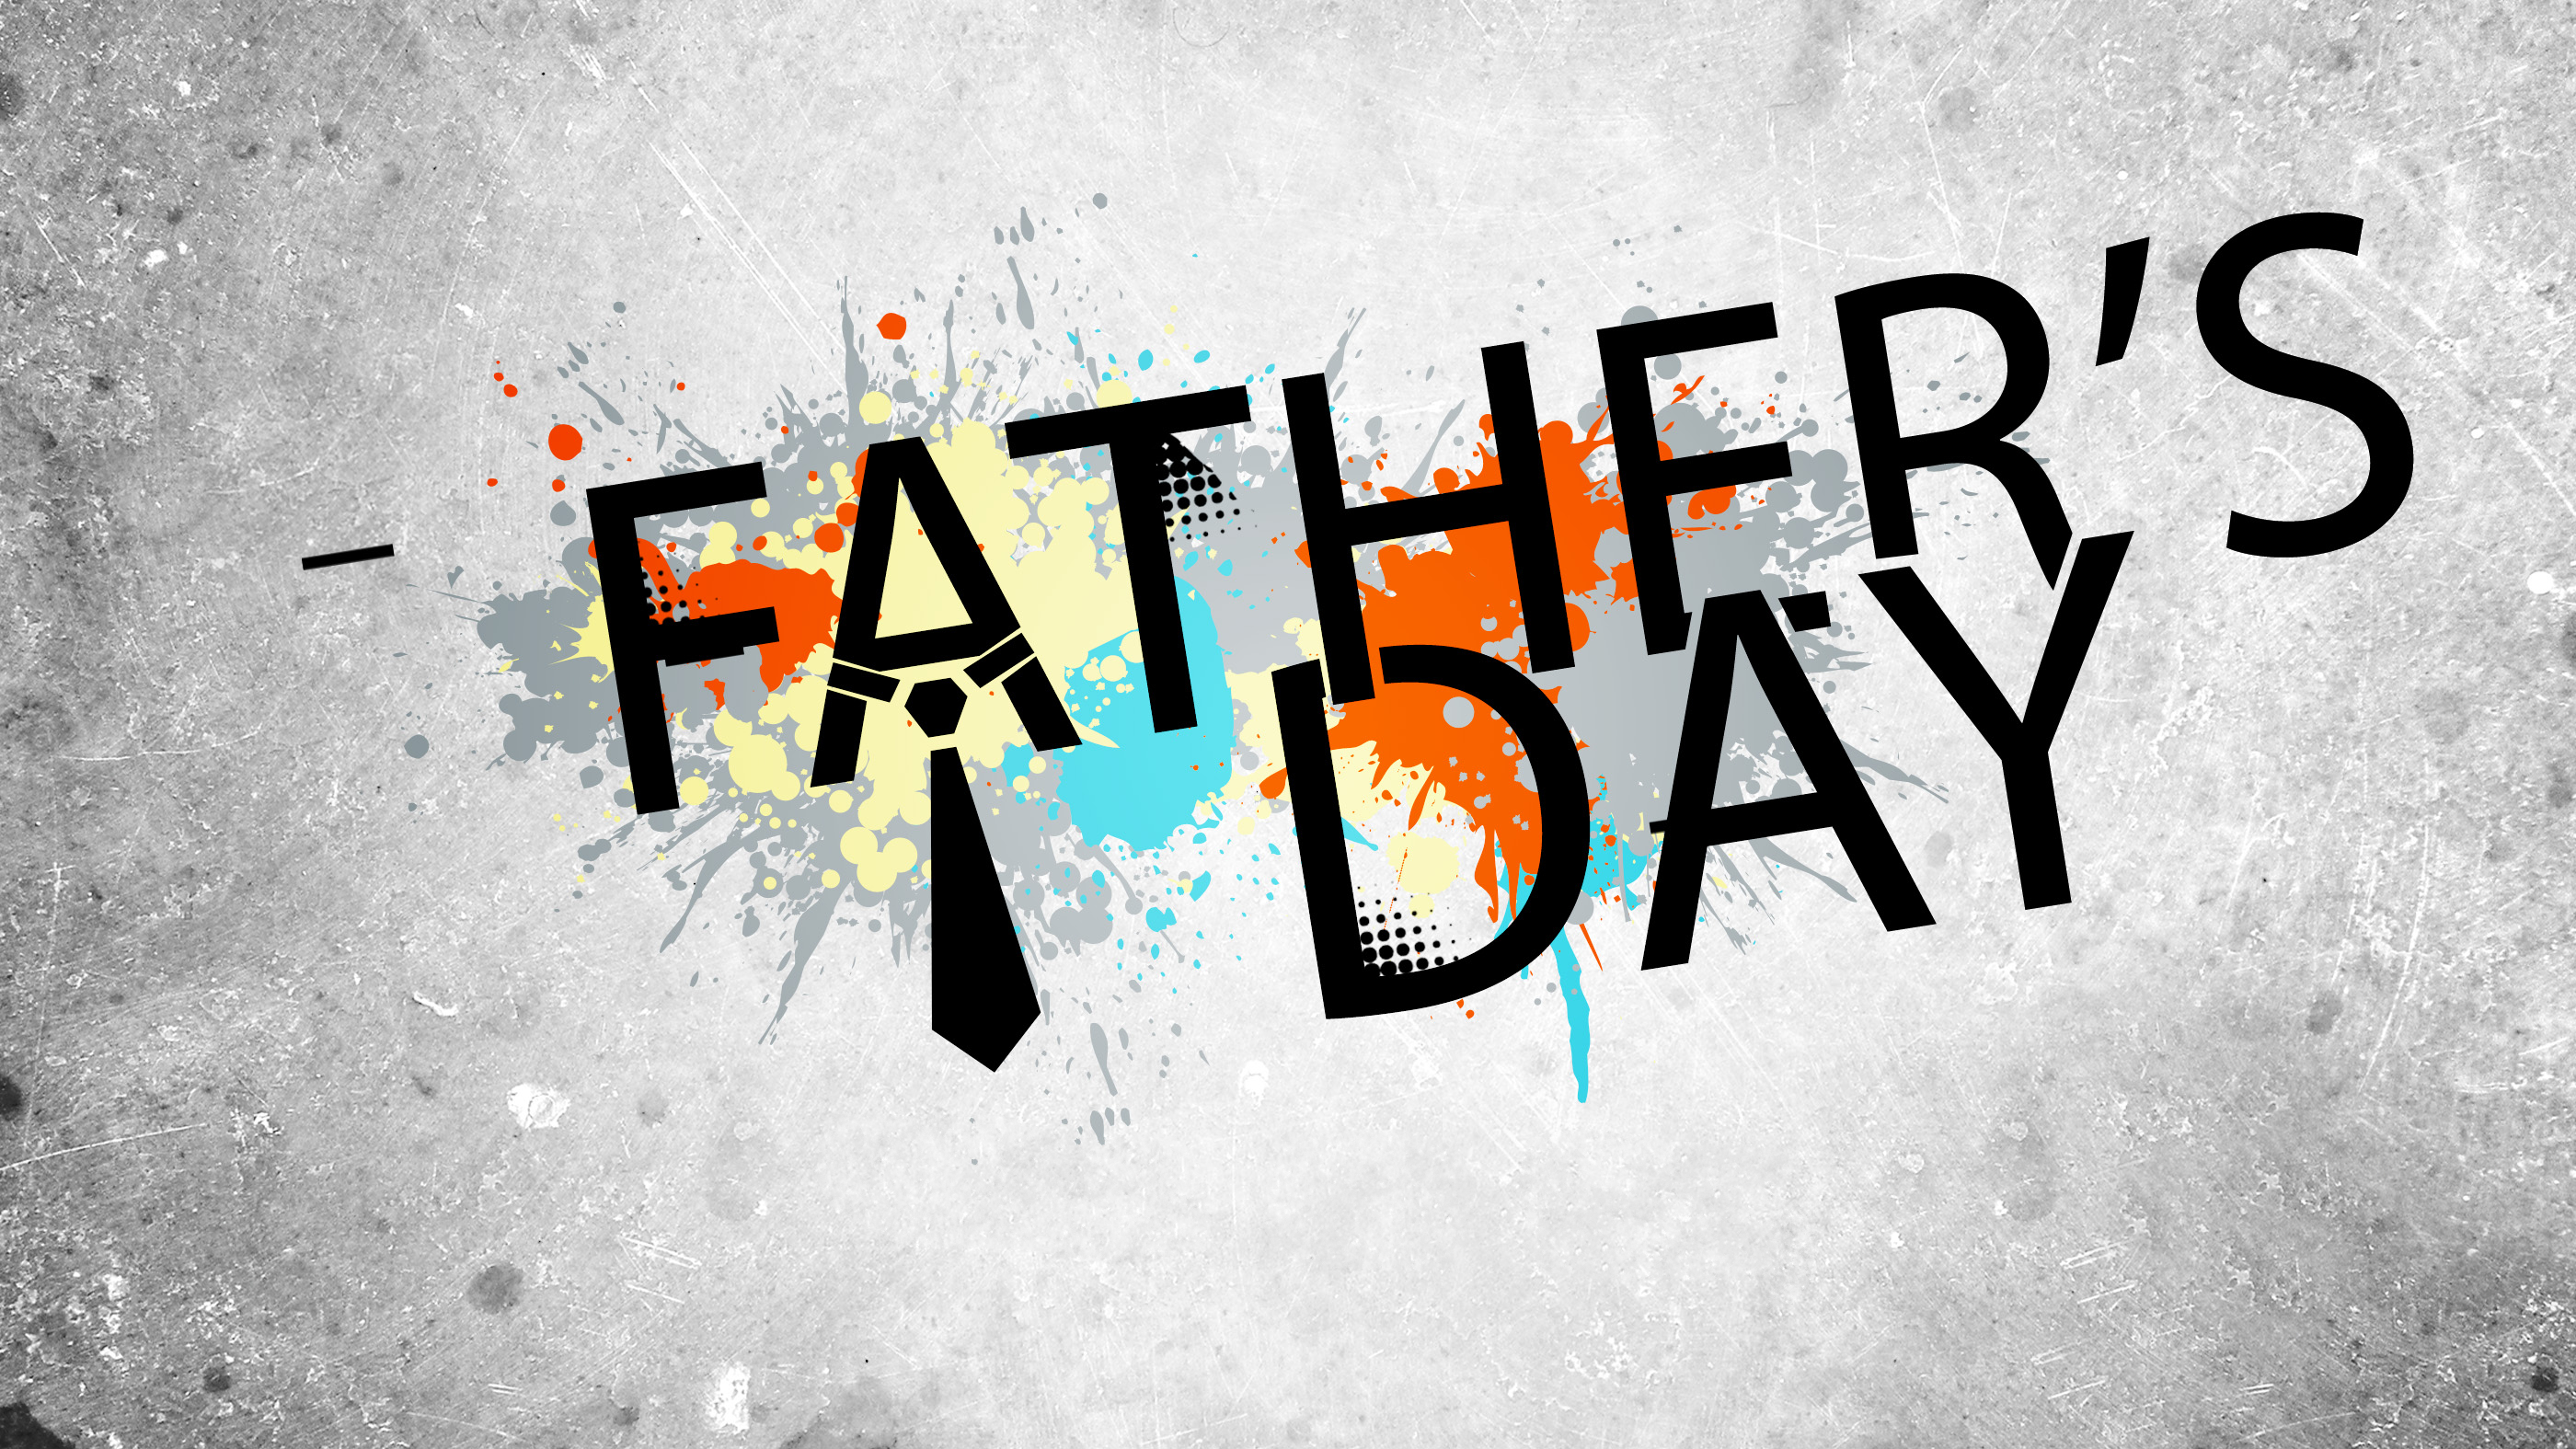 Fathers Day HD Wallpaper 1